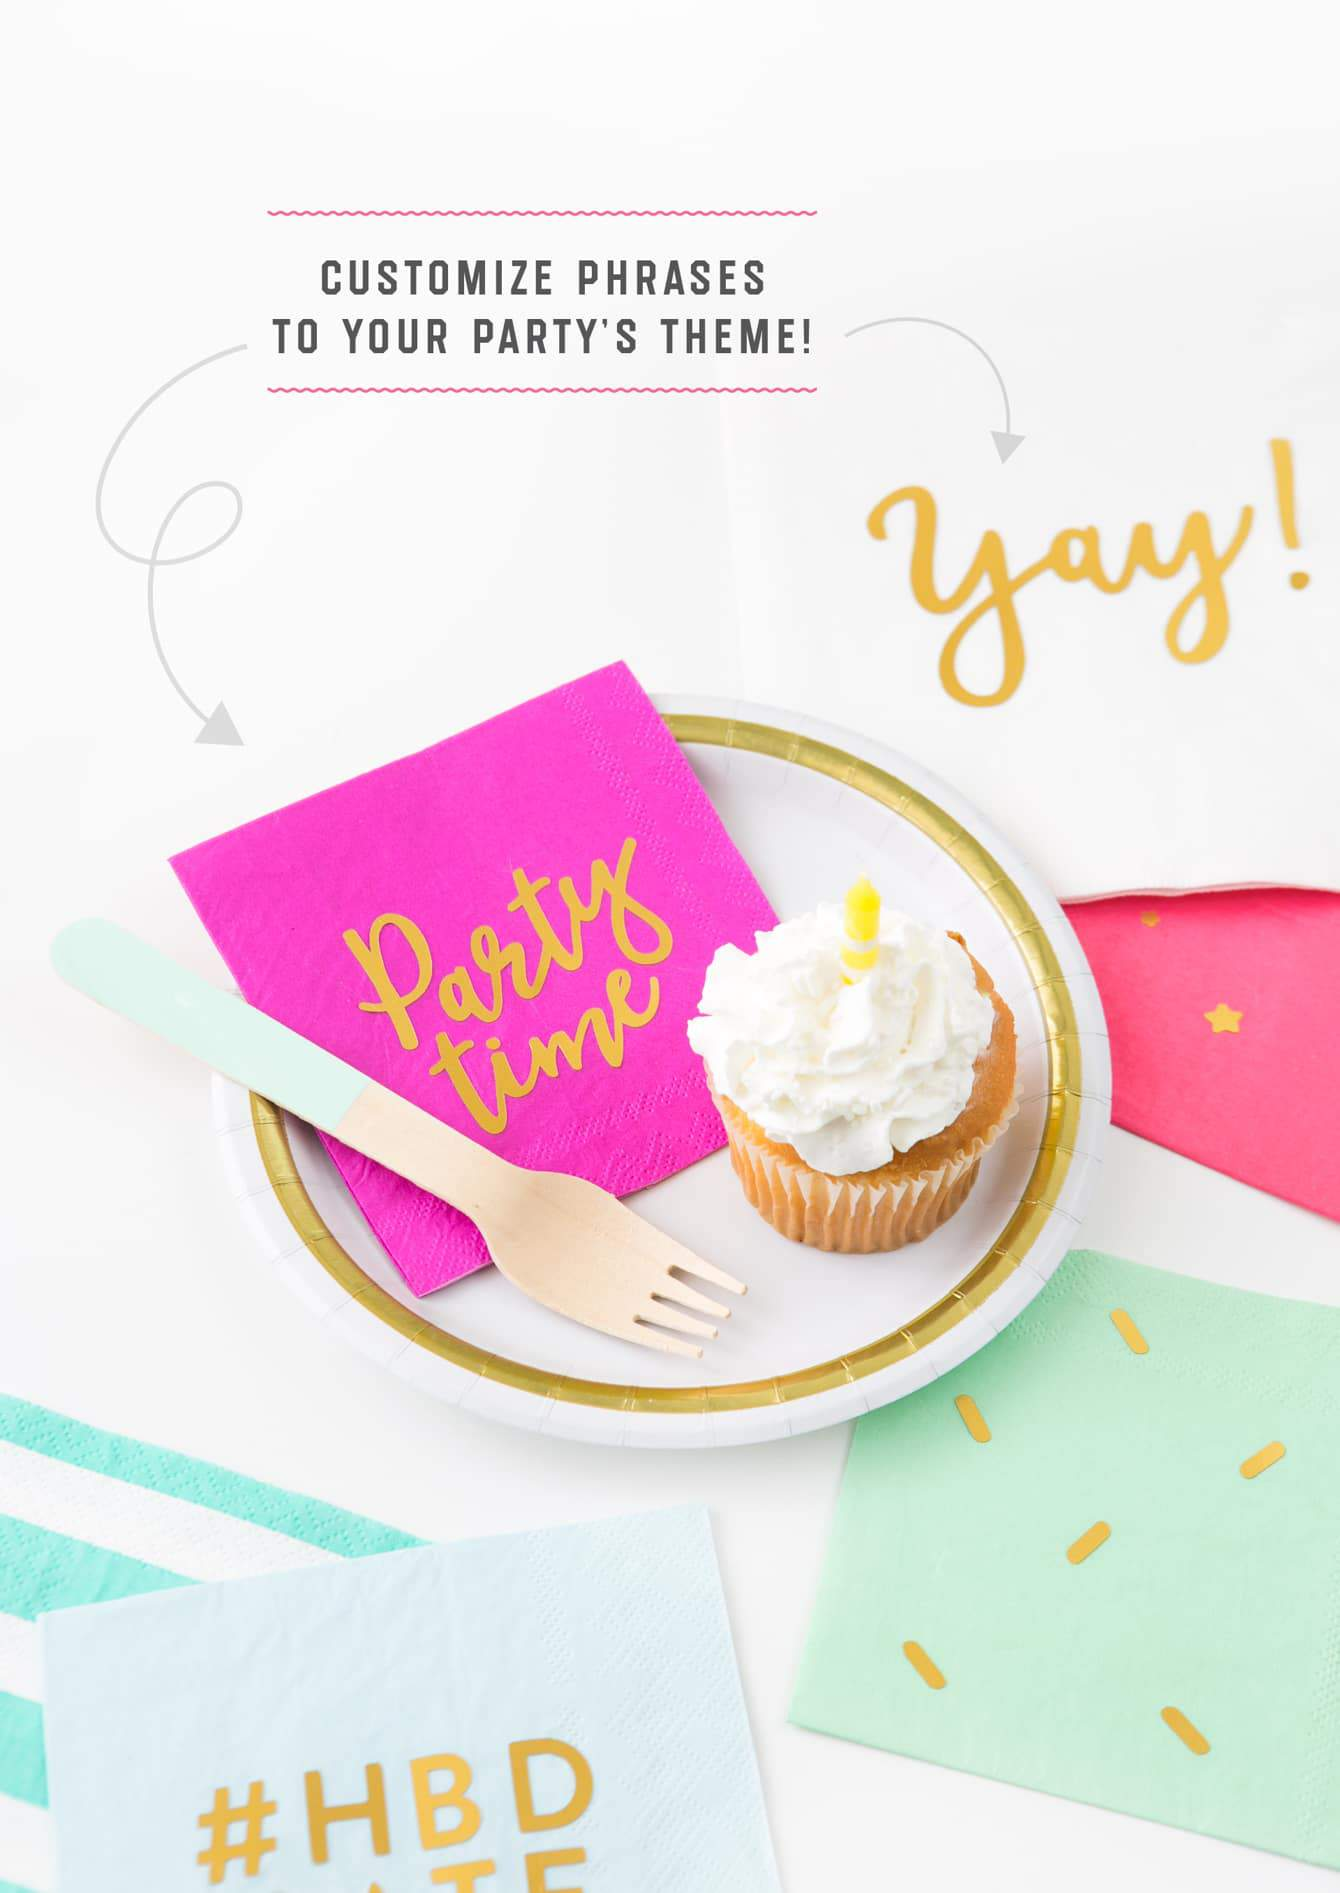 "Customize phrases to party theme on gold foil DIY napkins. Pink napkin with phrase ""party time"" and sprinkle napkin with cupcake."